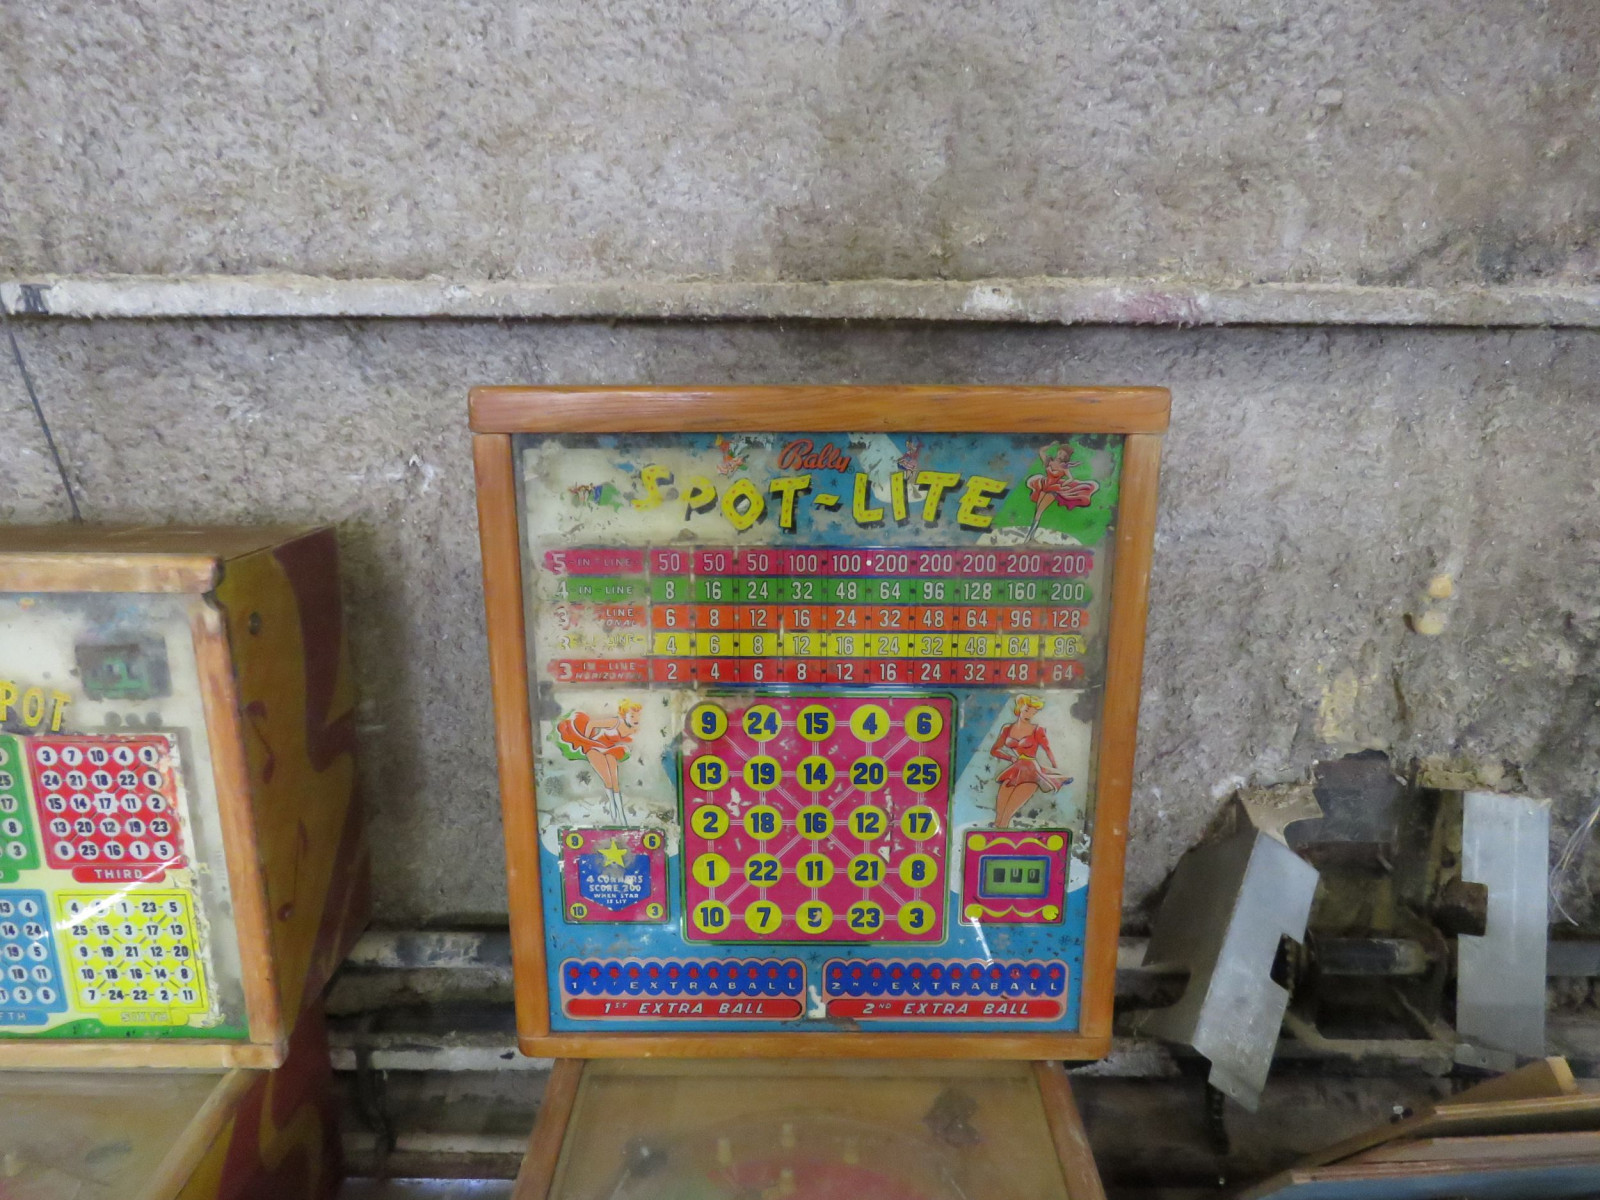 Vintage Bally Spot Light Pinball Machine - Image 4